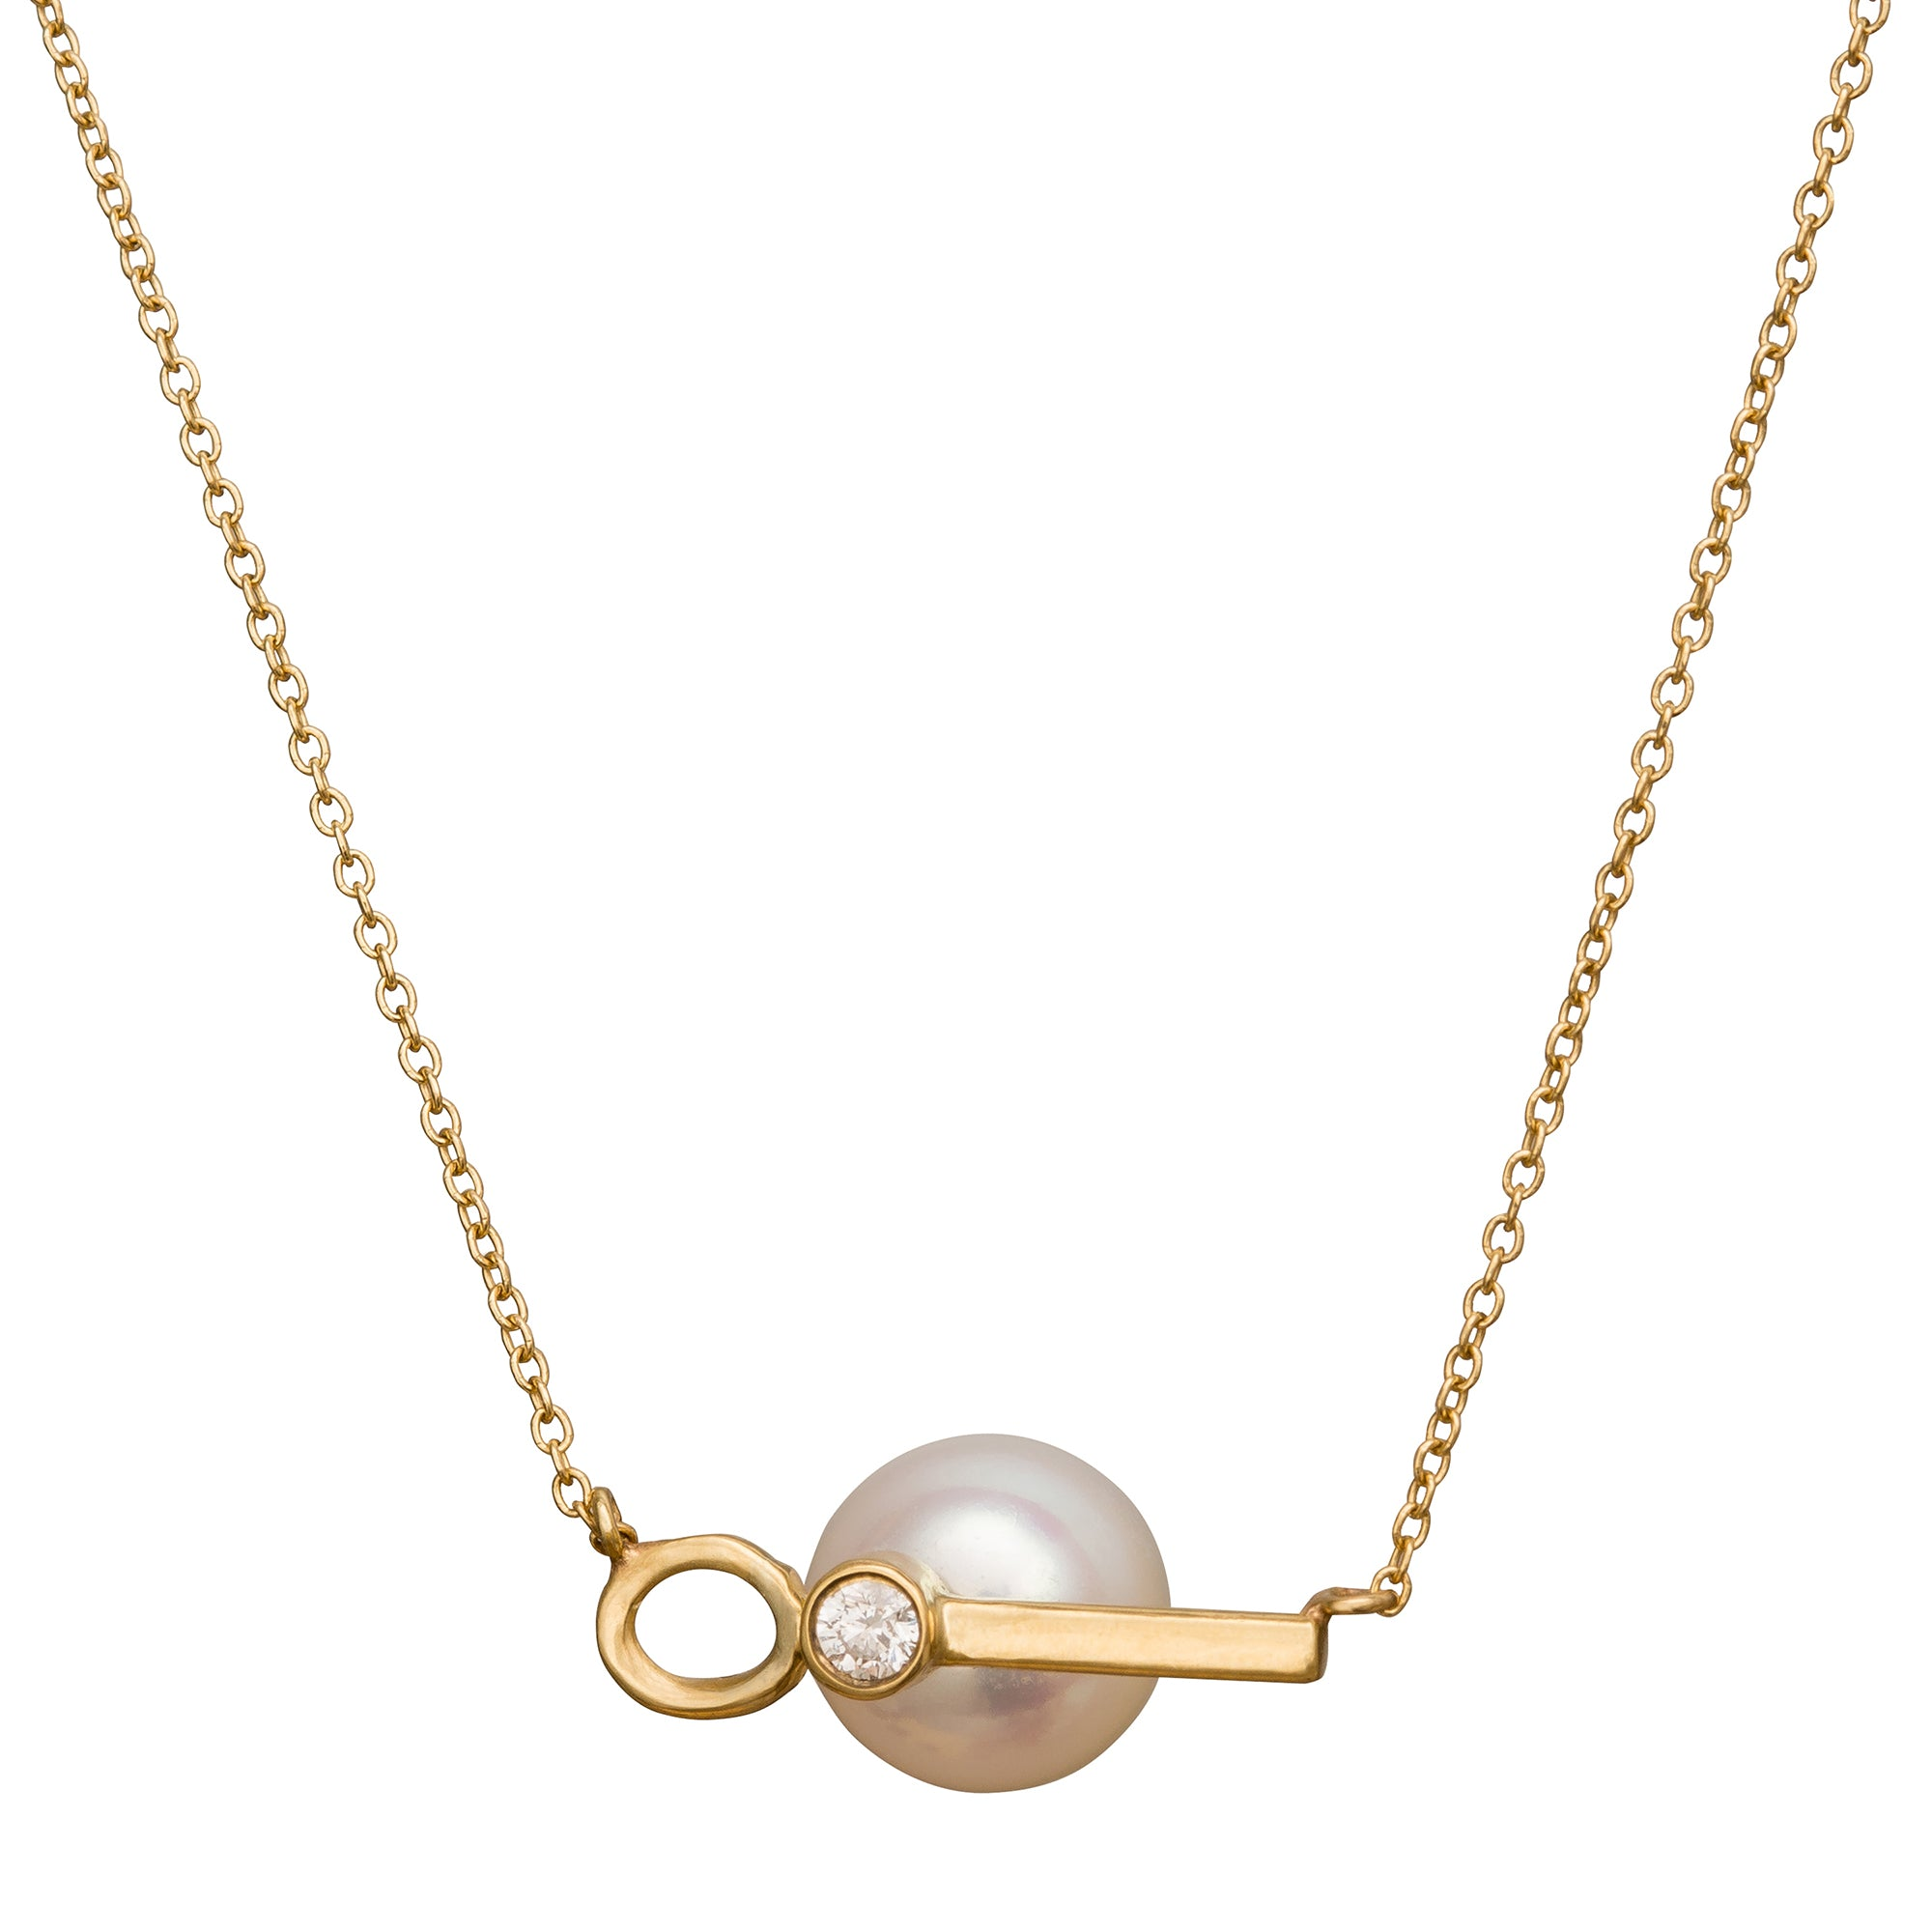 Pearl & Diamond Choker - Necklaces - Katey Walker | Broken English Jewelry